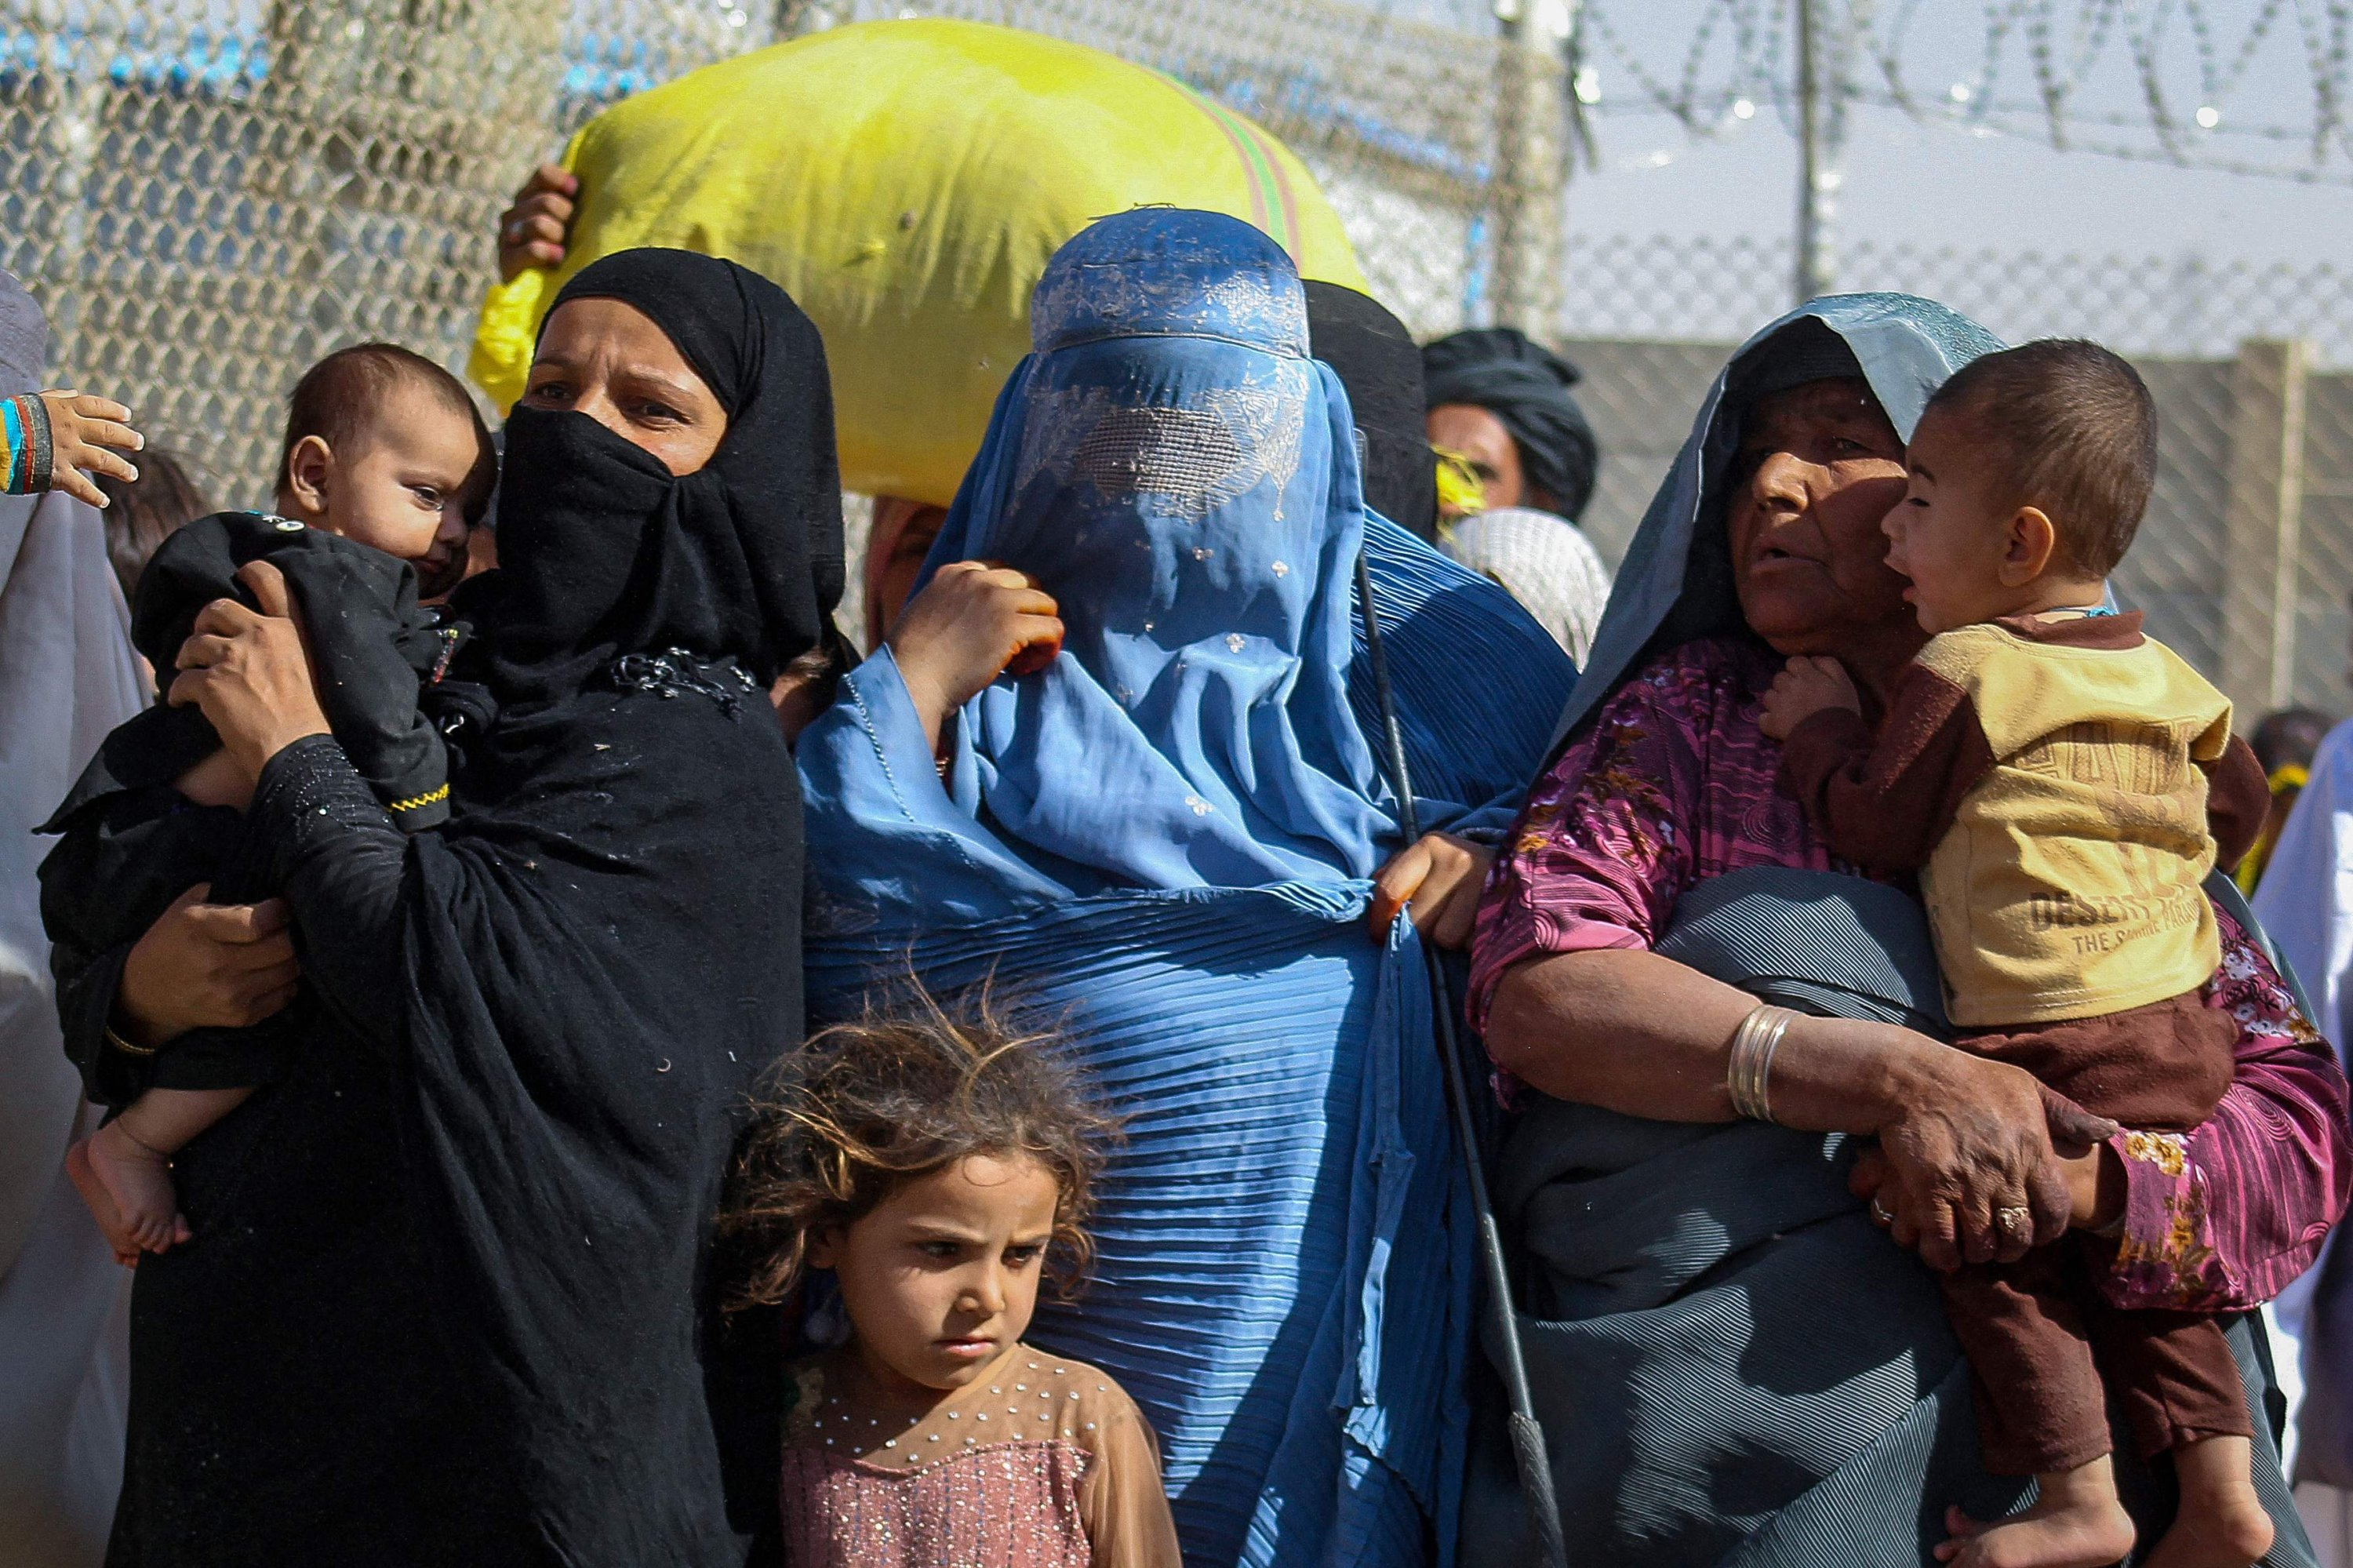 Afghan nationals arrive in Pakistan through the Pakistan-Afghanistan border crossing point in Chaman on Aug. 24, 2021, following the Taliban's military takeover of Afghanistan. (AFP Photo)